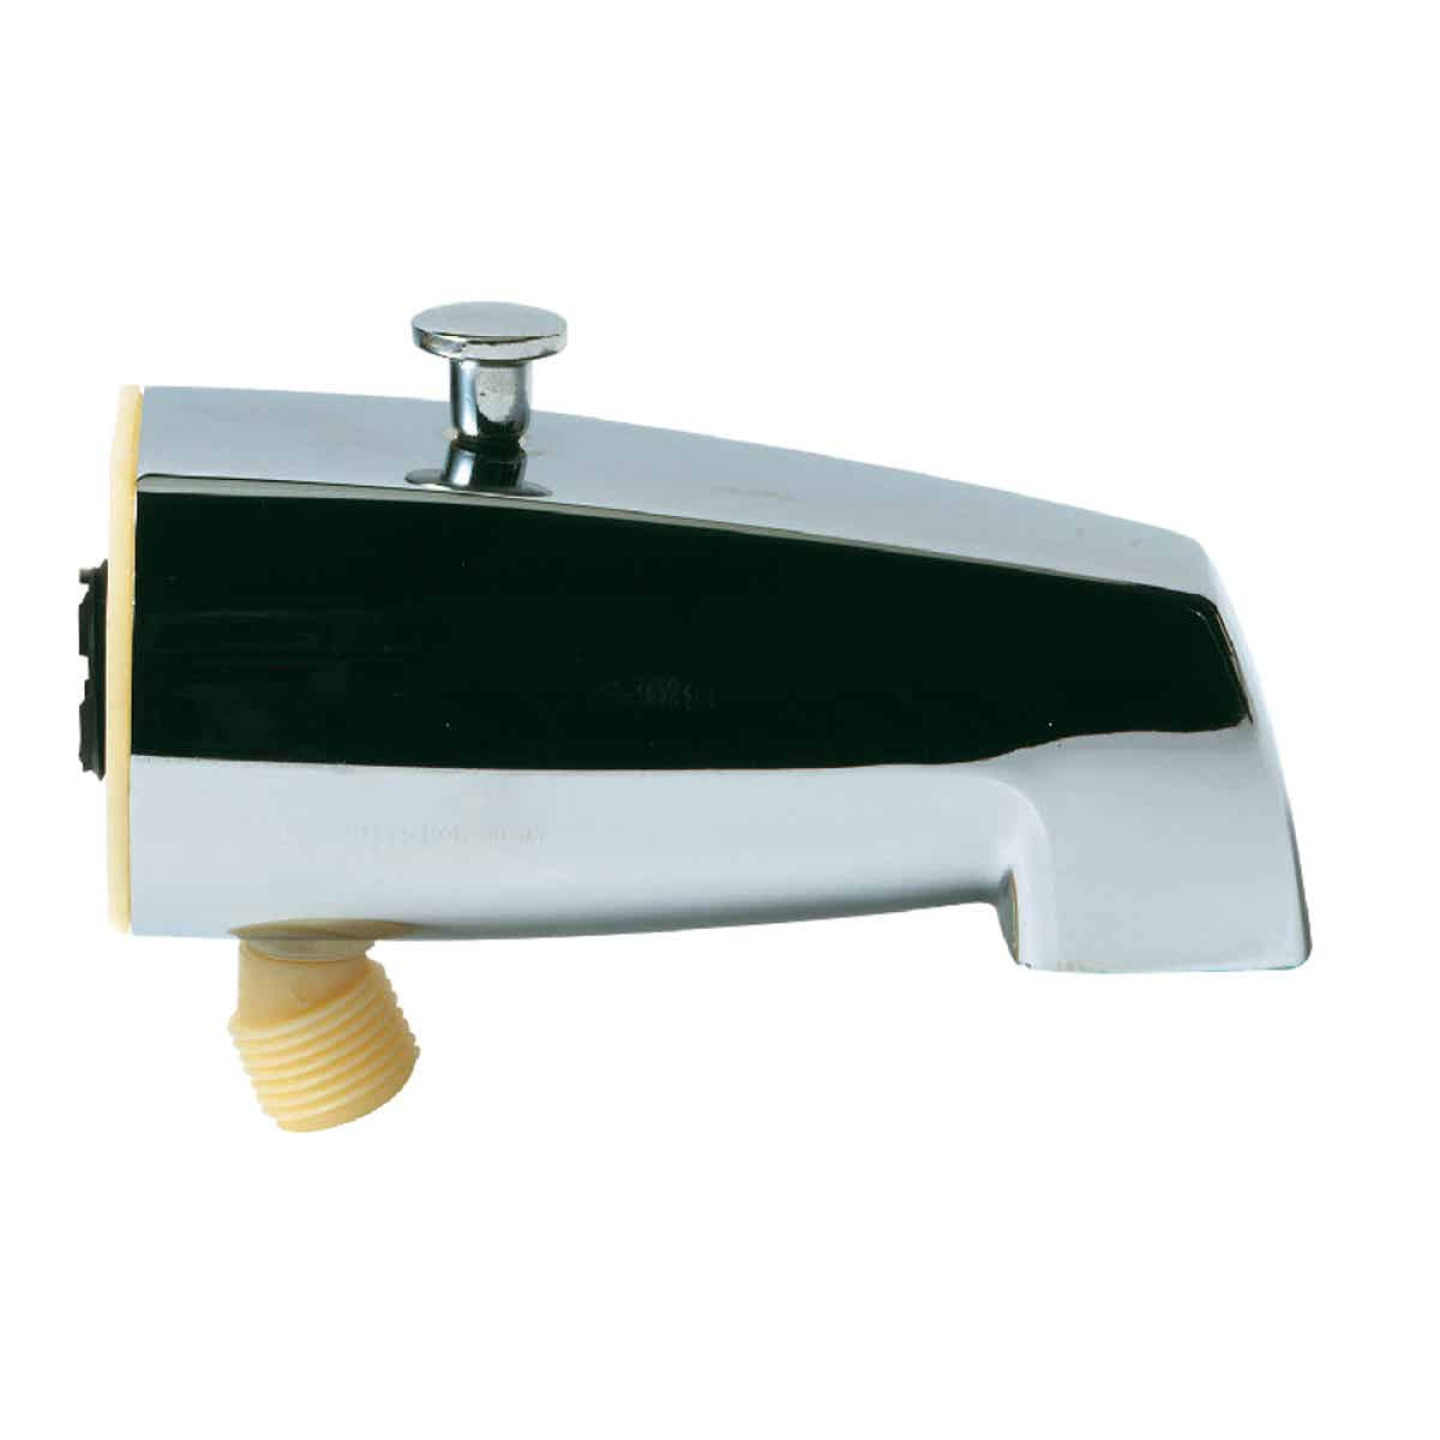 Do it 5-1/2 In. Bottom Mount Chrome Bathtub Spout with Diverter Image 1